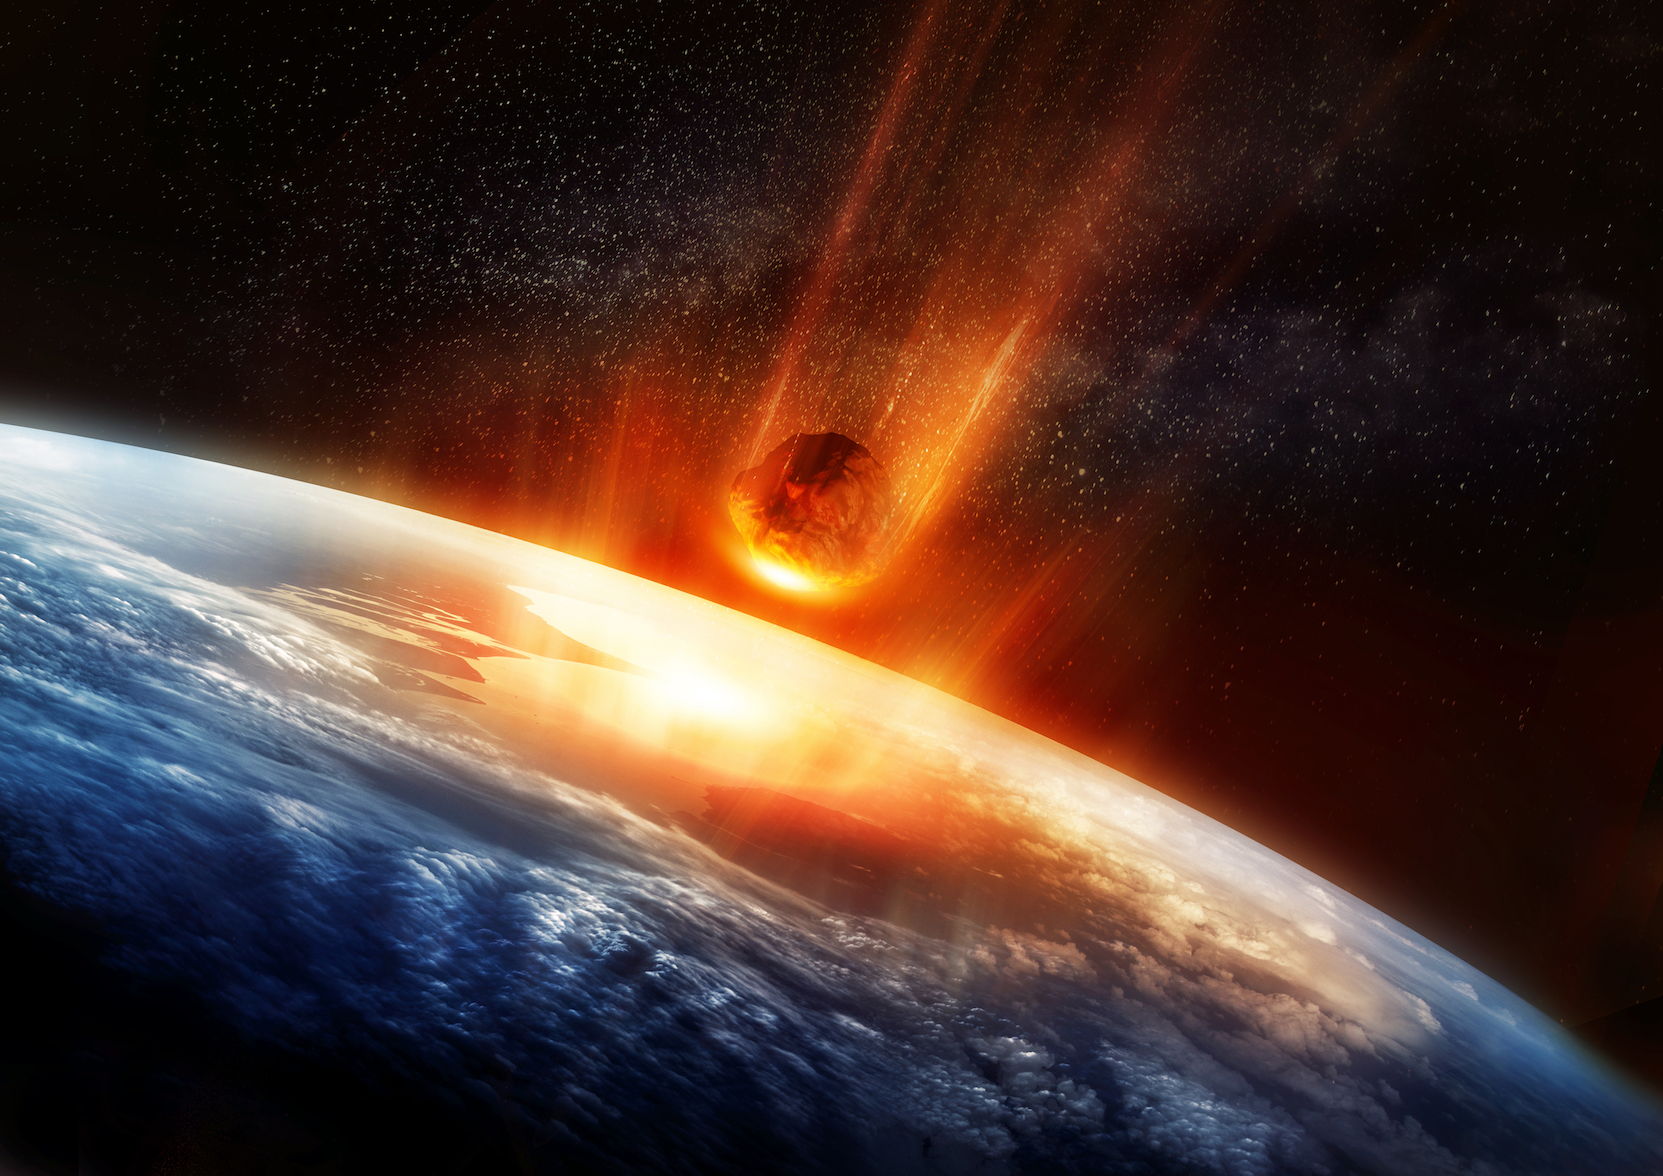 Wind blasts and shock waves would inflict the most casualties if an asteroid hit the earth, according to a new study.